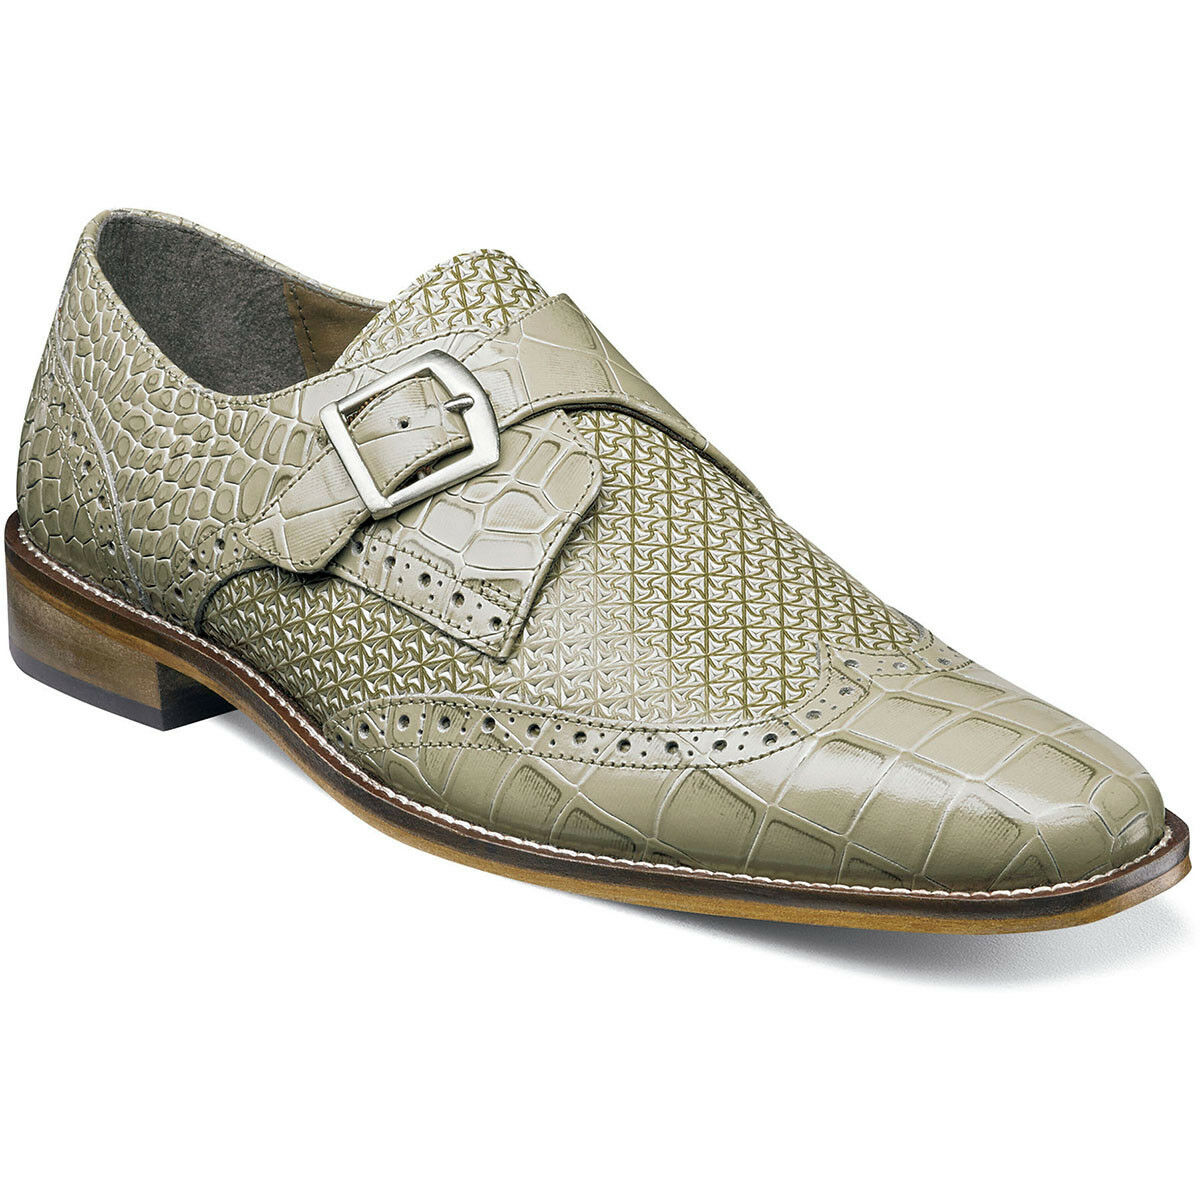 Stacy Adams Men's Giannino-Monk Strap Wingtip Slip-On Loafer, Taupe, Size 9M